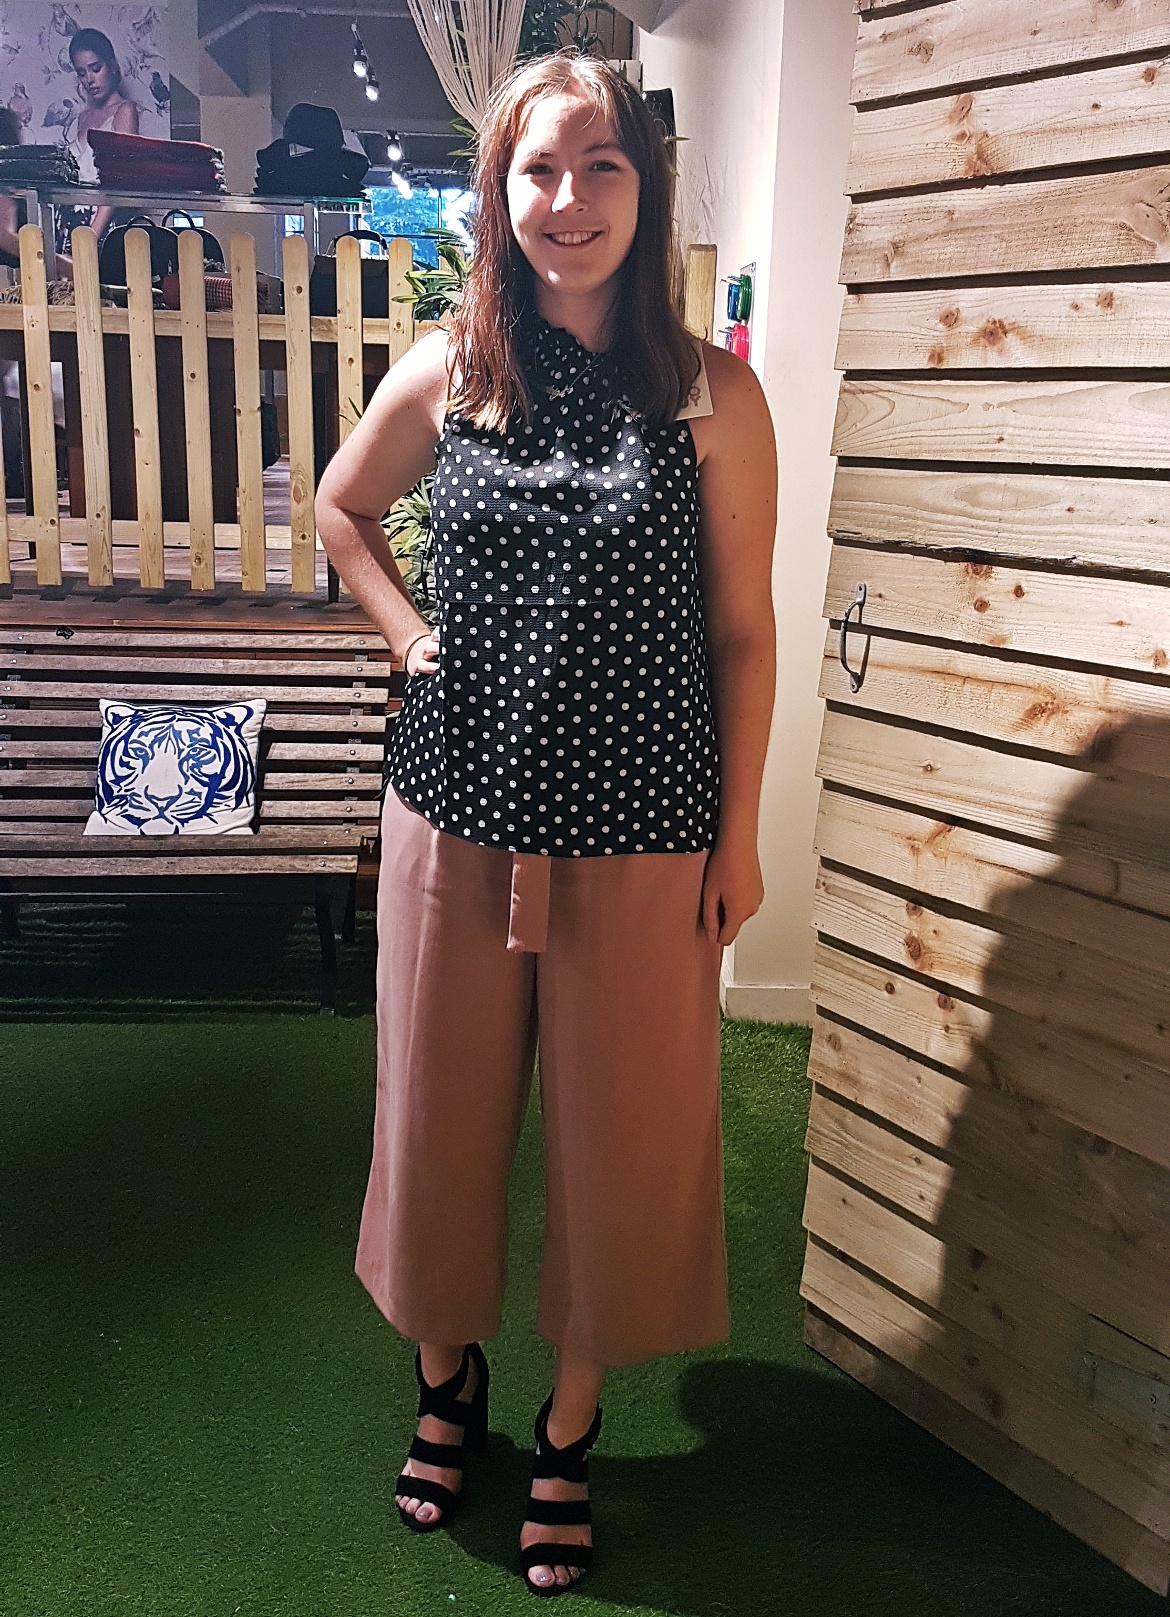 Keeleigh trying on a top - Tune in with Joy the Store, Leeds shop review by BeckyBecky Blogs